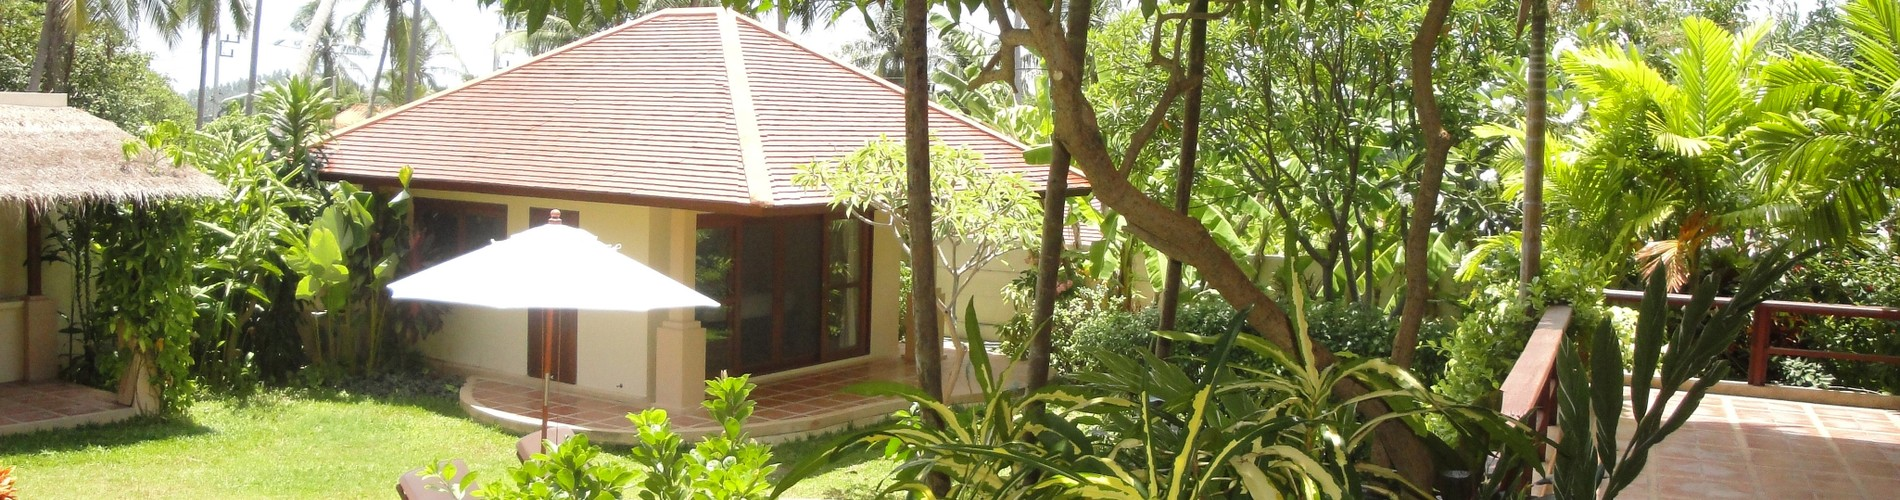 Vacation Rental Plantation Villa 04 Som-O